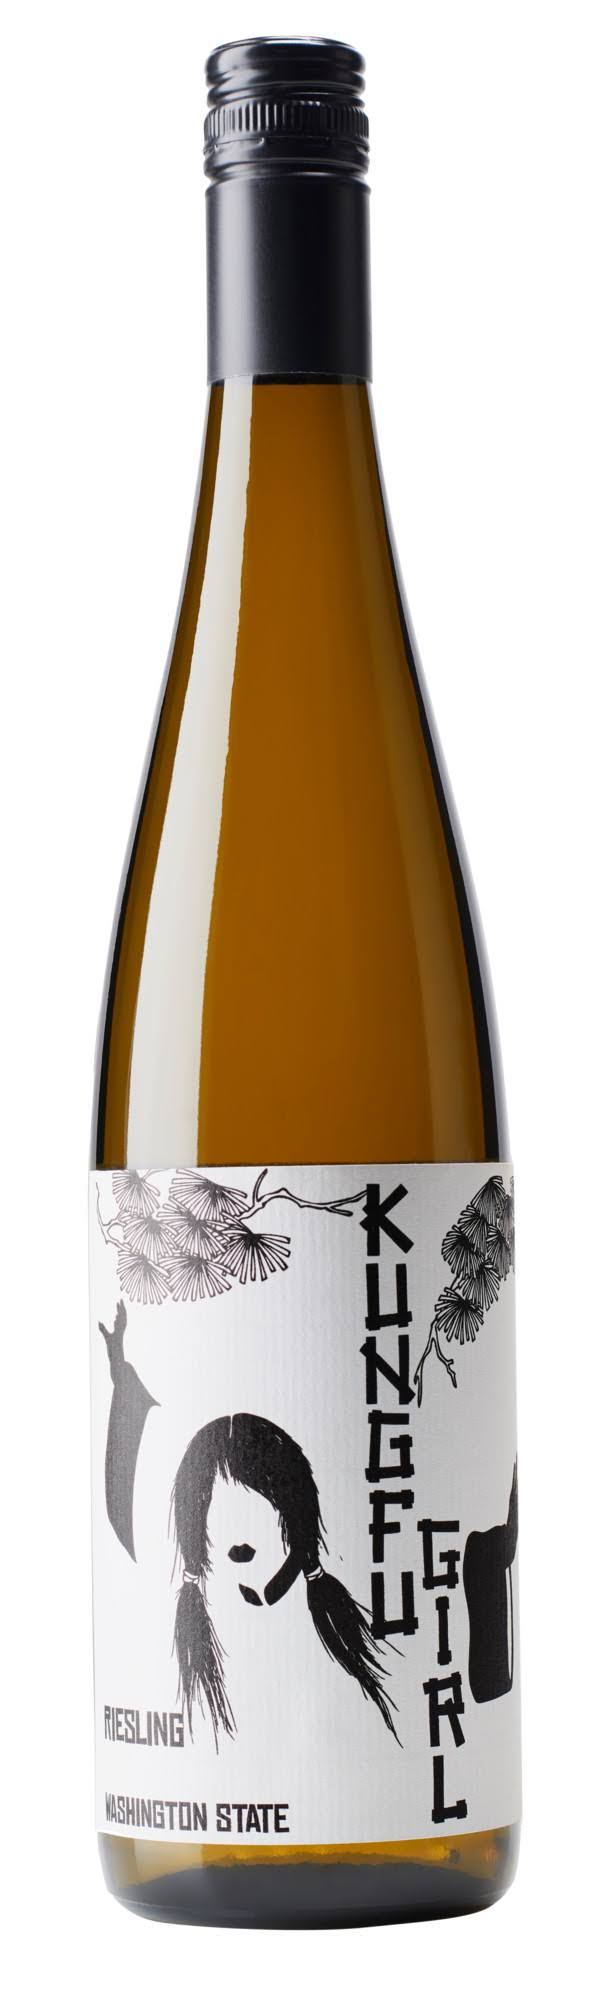 Kung Fu Girl Riesling Washington State